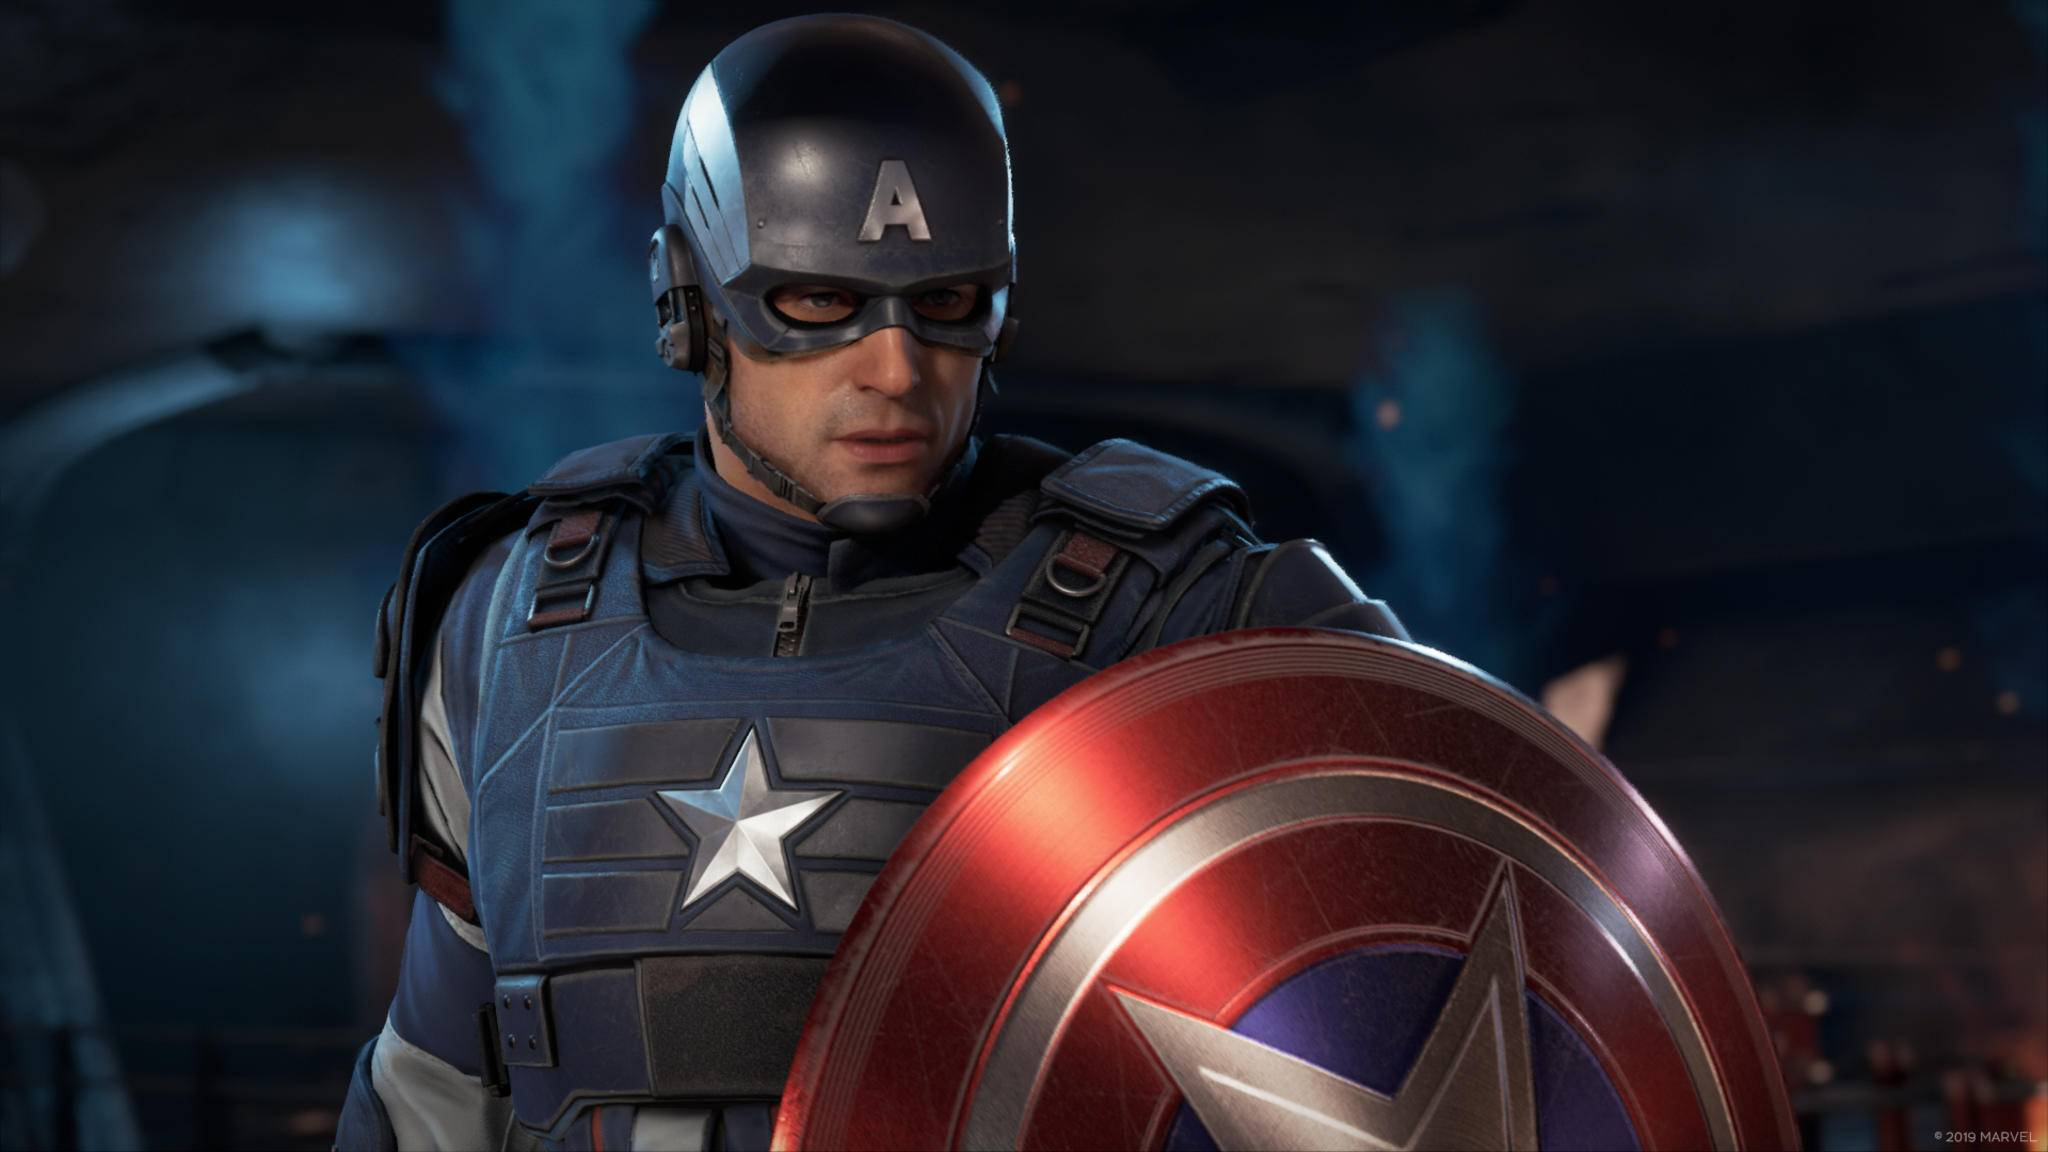 marvels-avengers-gamescom-captain-america